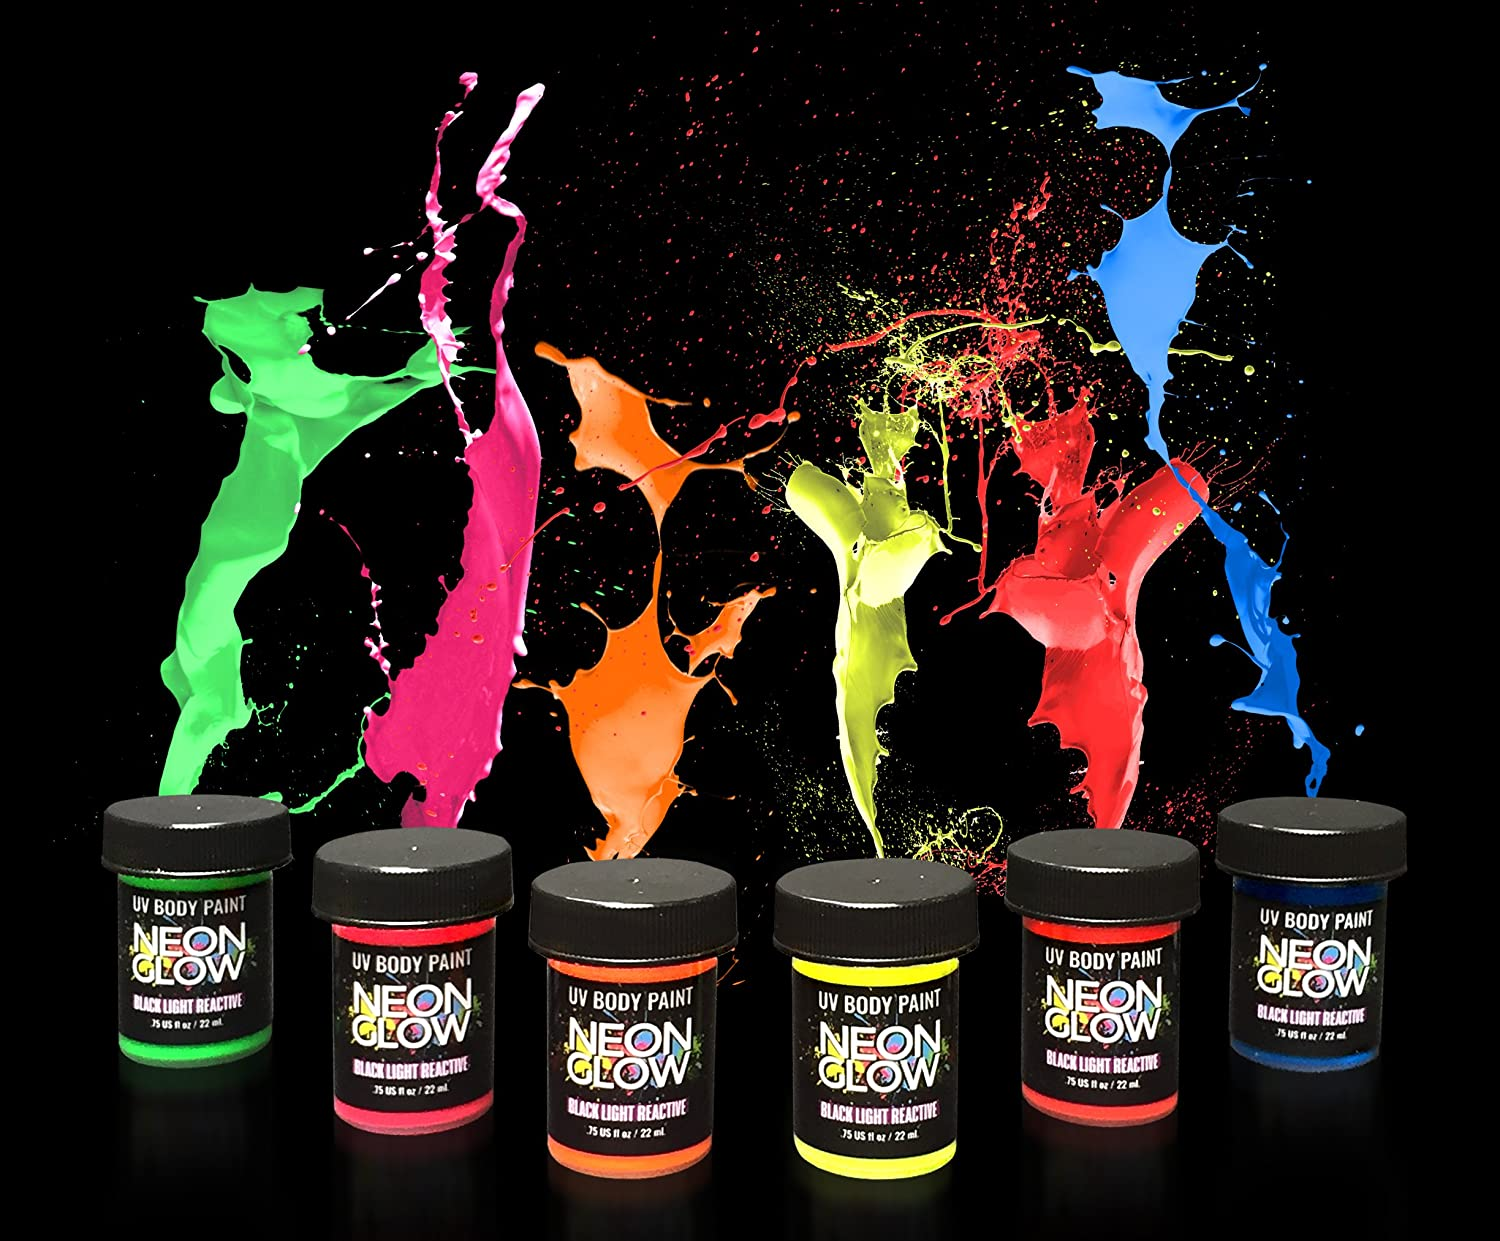 Buy Neon Glow In The Dark Body Art Paint 1 Premium Set 6 Pack Of 75 Oz Bottles Glows Brighter Uv Blacklight Reactive Safe And Non Toxic Fluorescent Set Dries Quickly Goes On